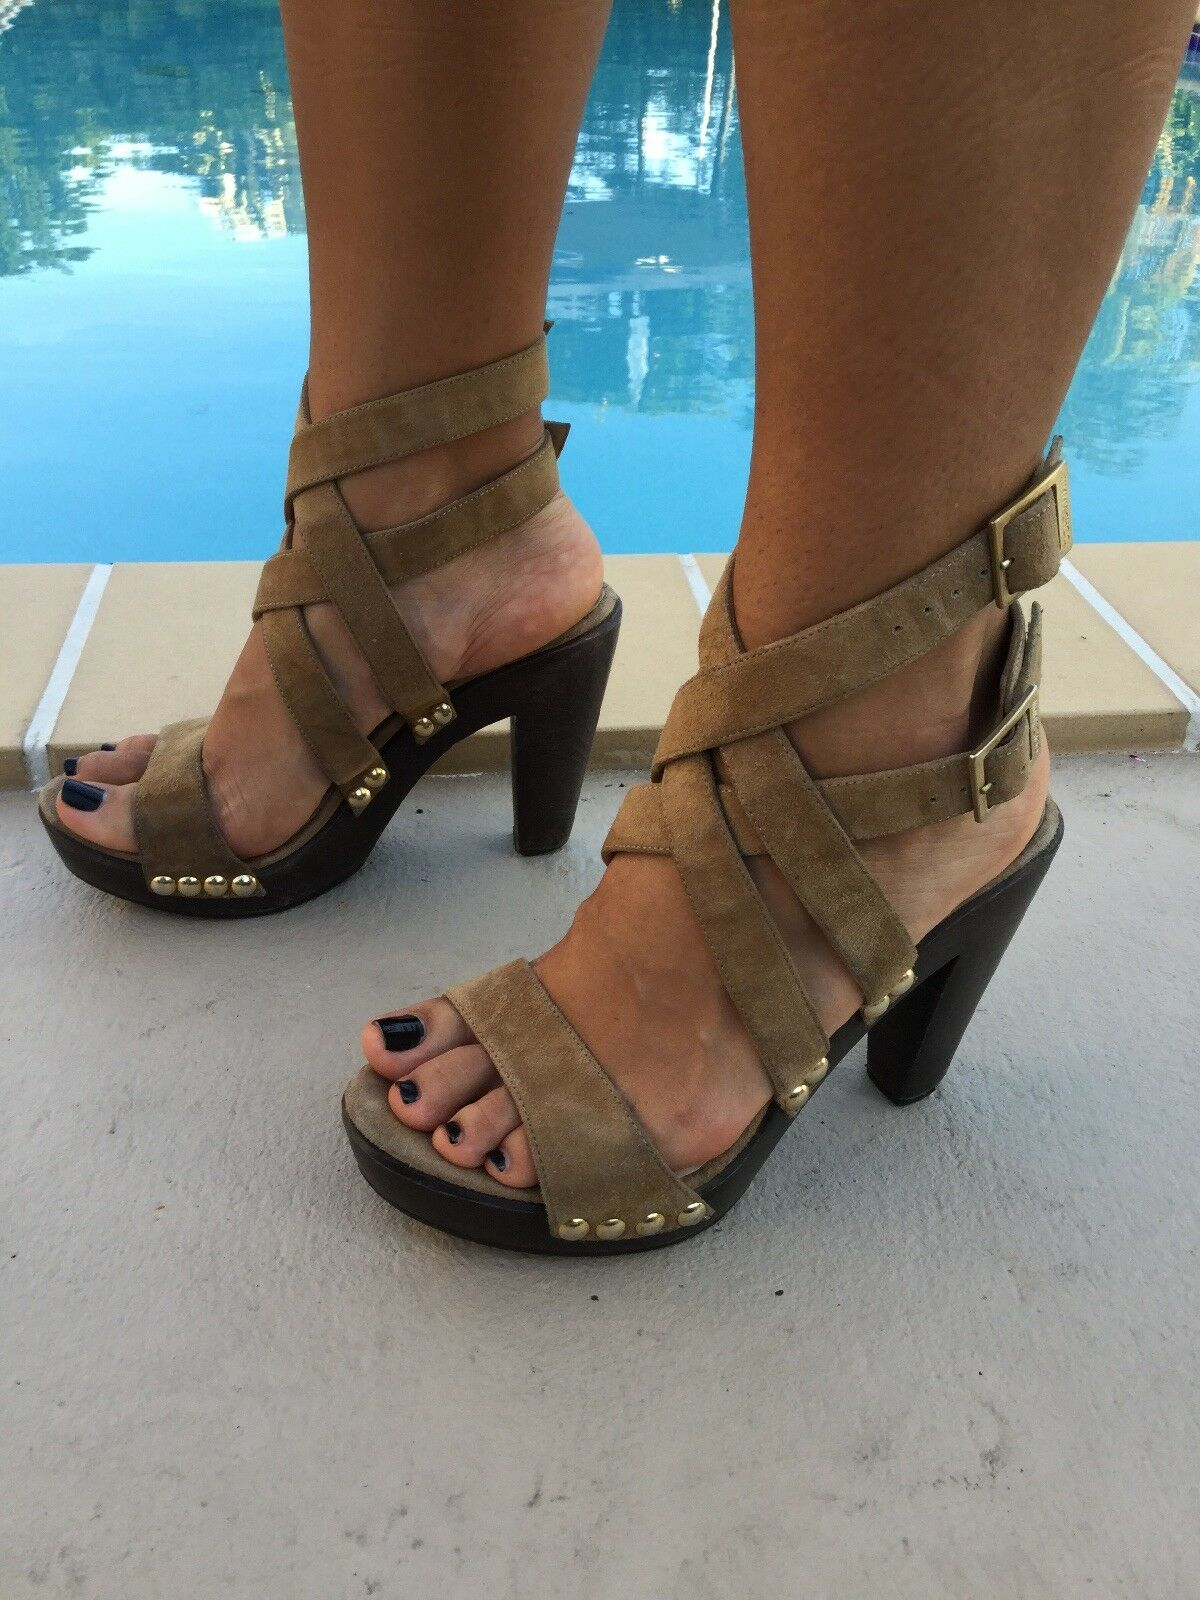 rivenditore di fitness JIMMY CHOO Marrone SUEDE SUEDE SUEDE CHUNKY WOOD HEEL STRAPPY SANDALS Sz 38B MADE IN ITALY  nuovo di marca